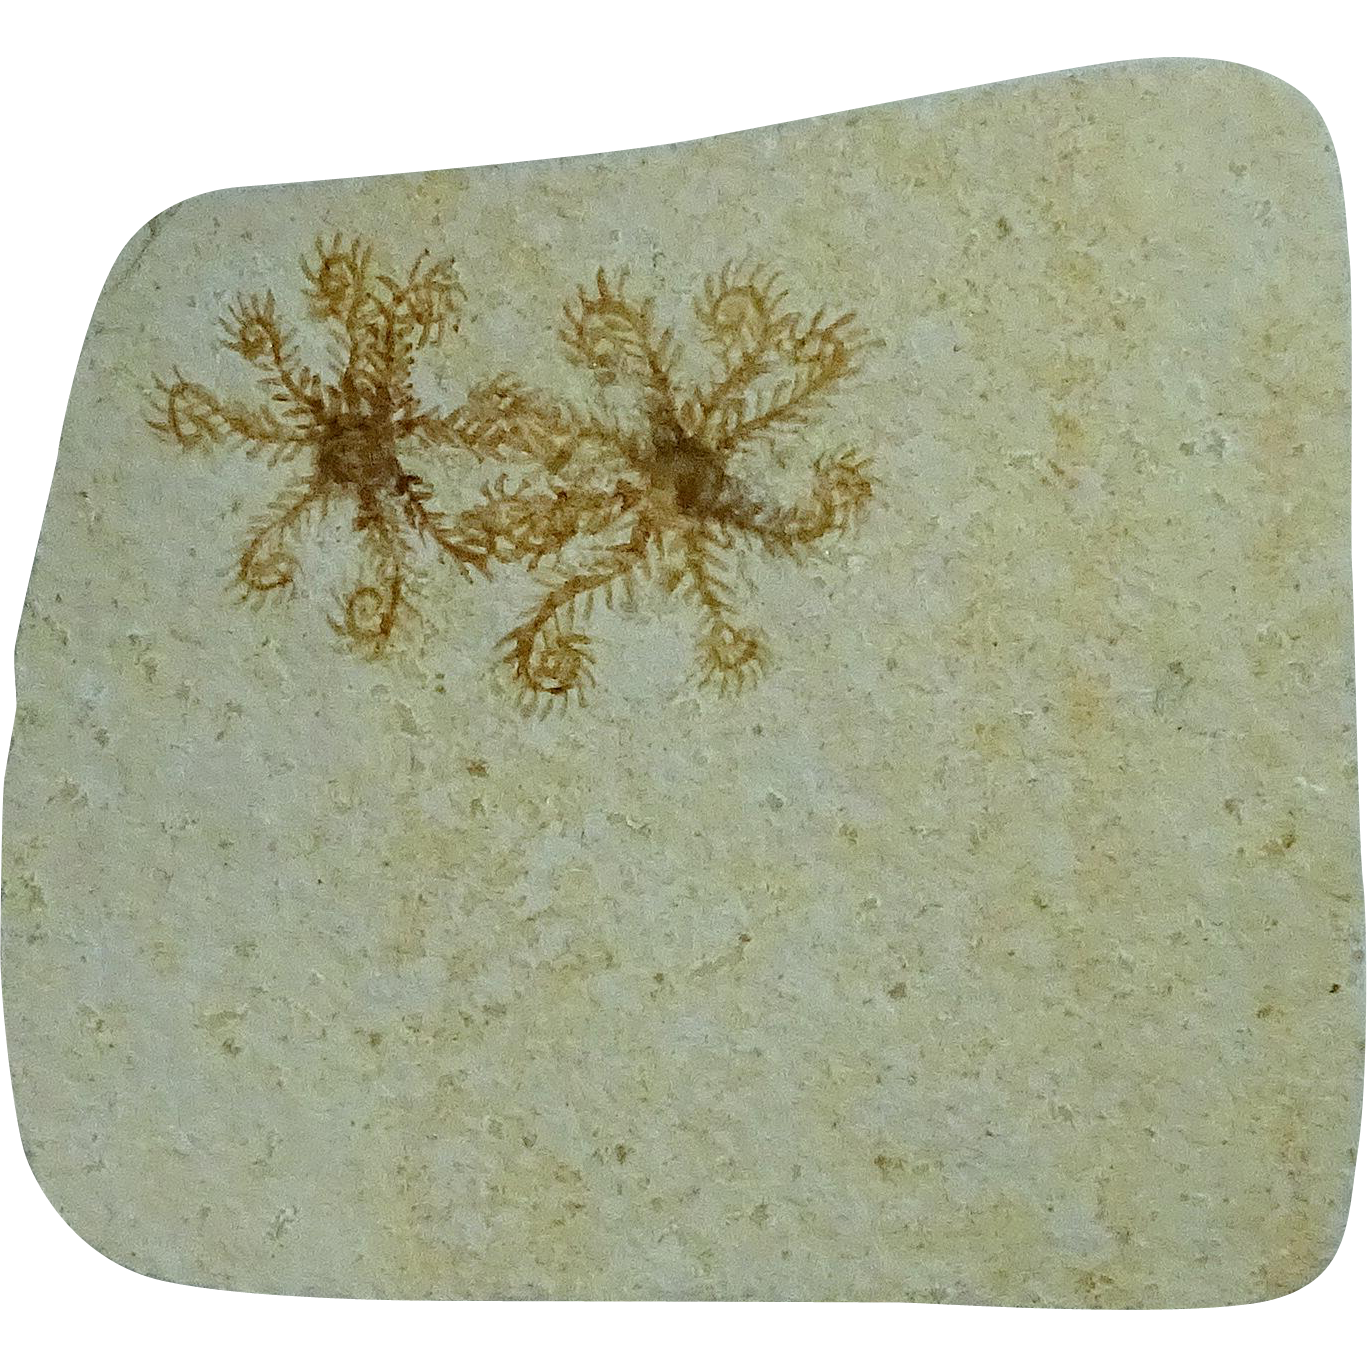 Floating Crinoid Fossil; Dates From the Jurasic Period; Germany